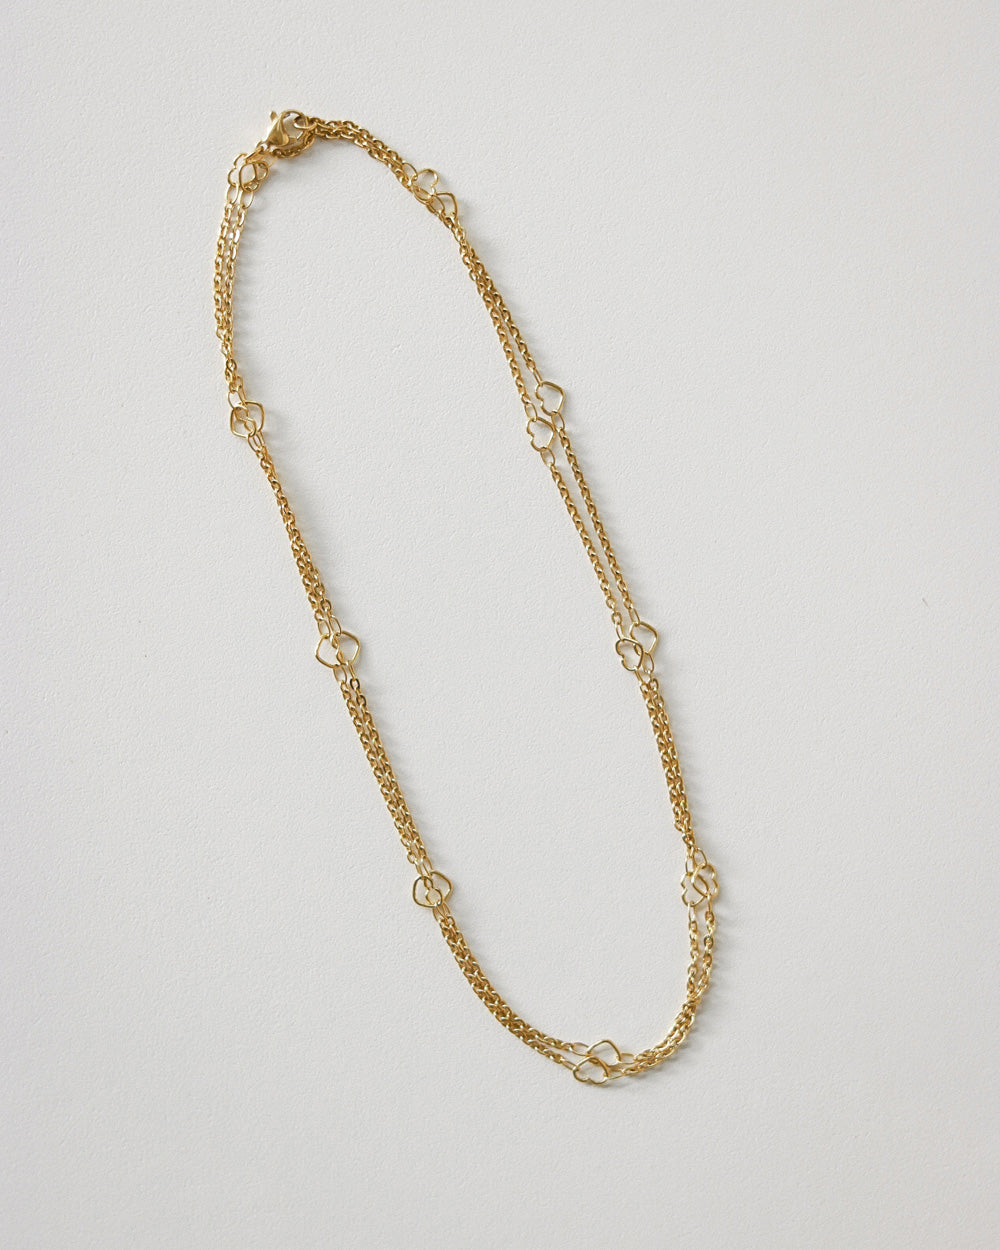 Adore chain in gold by The Hexad Jewellery